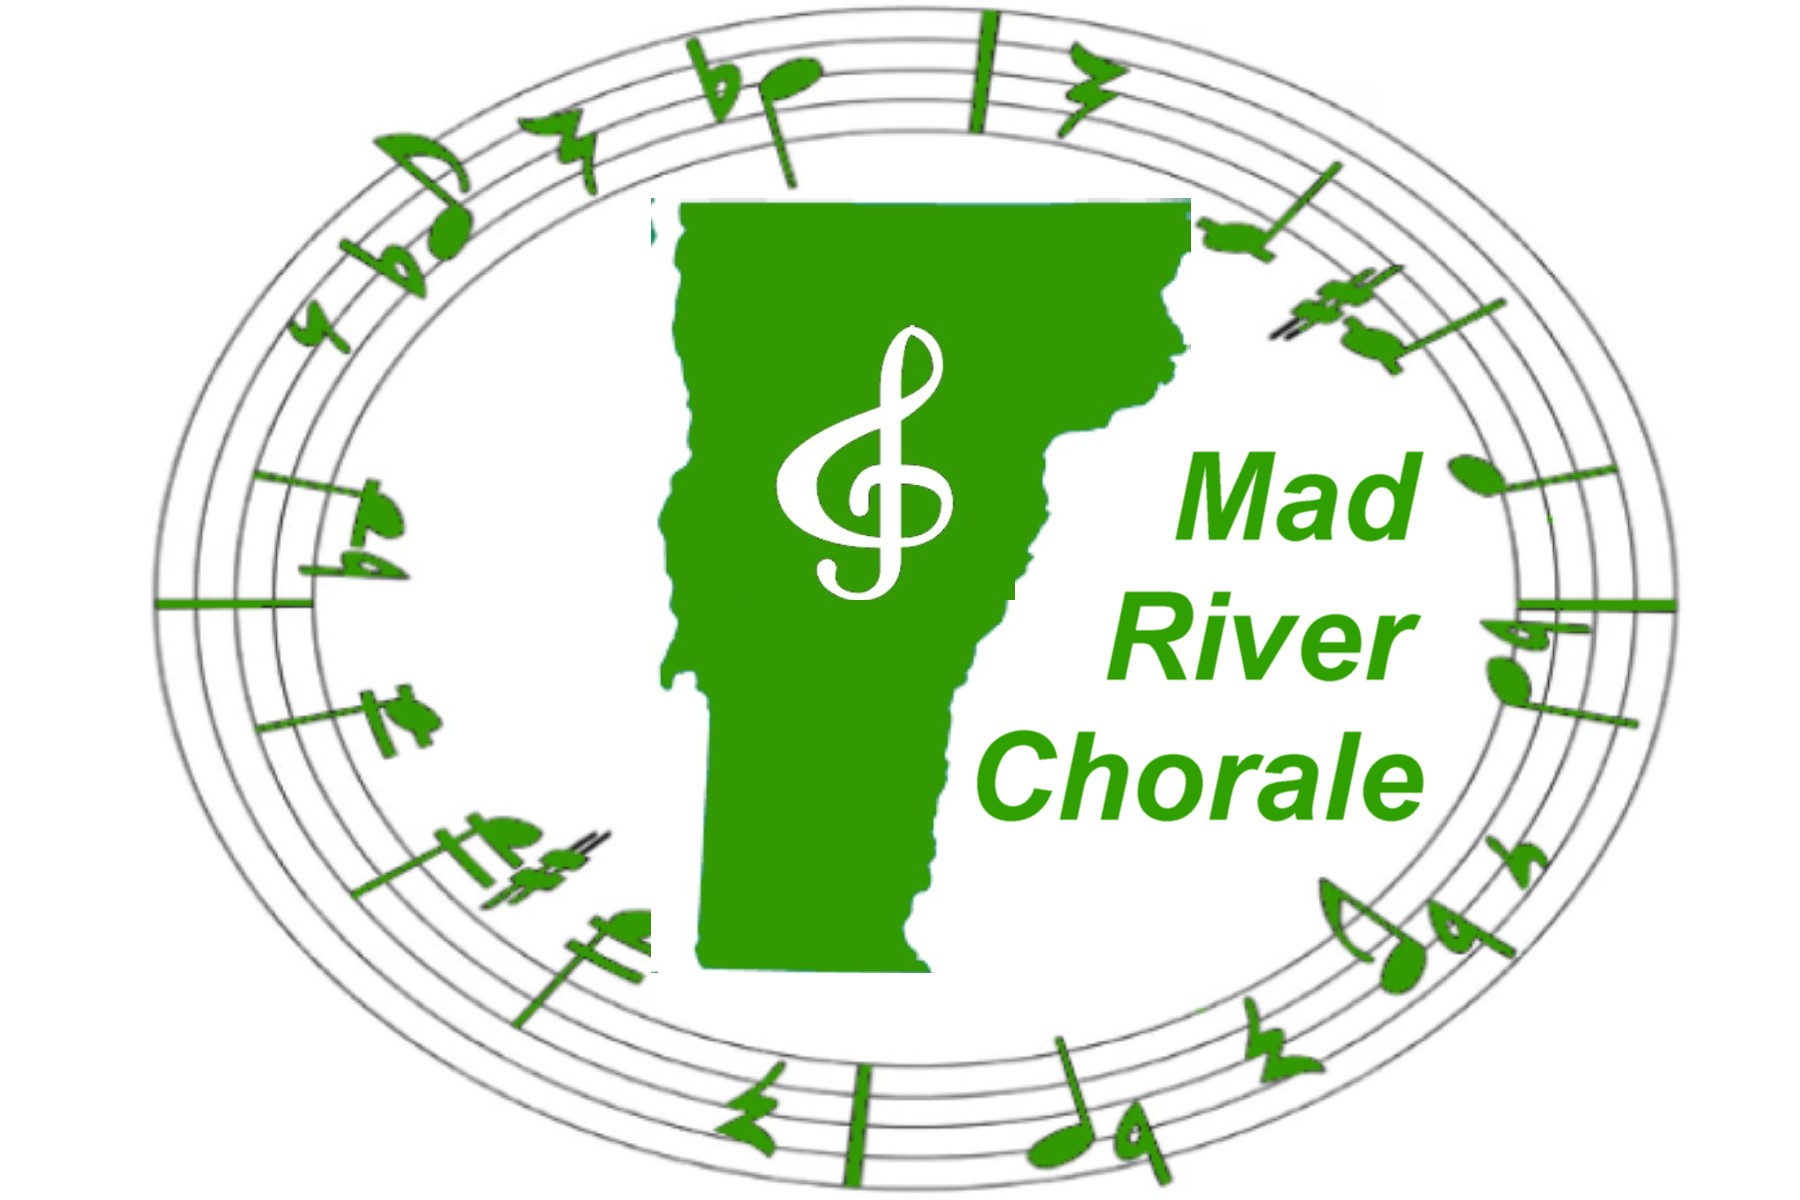 Mad River Chorale logo